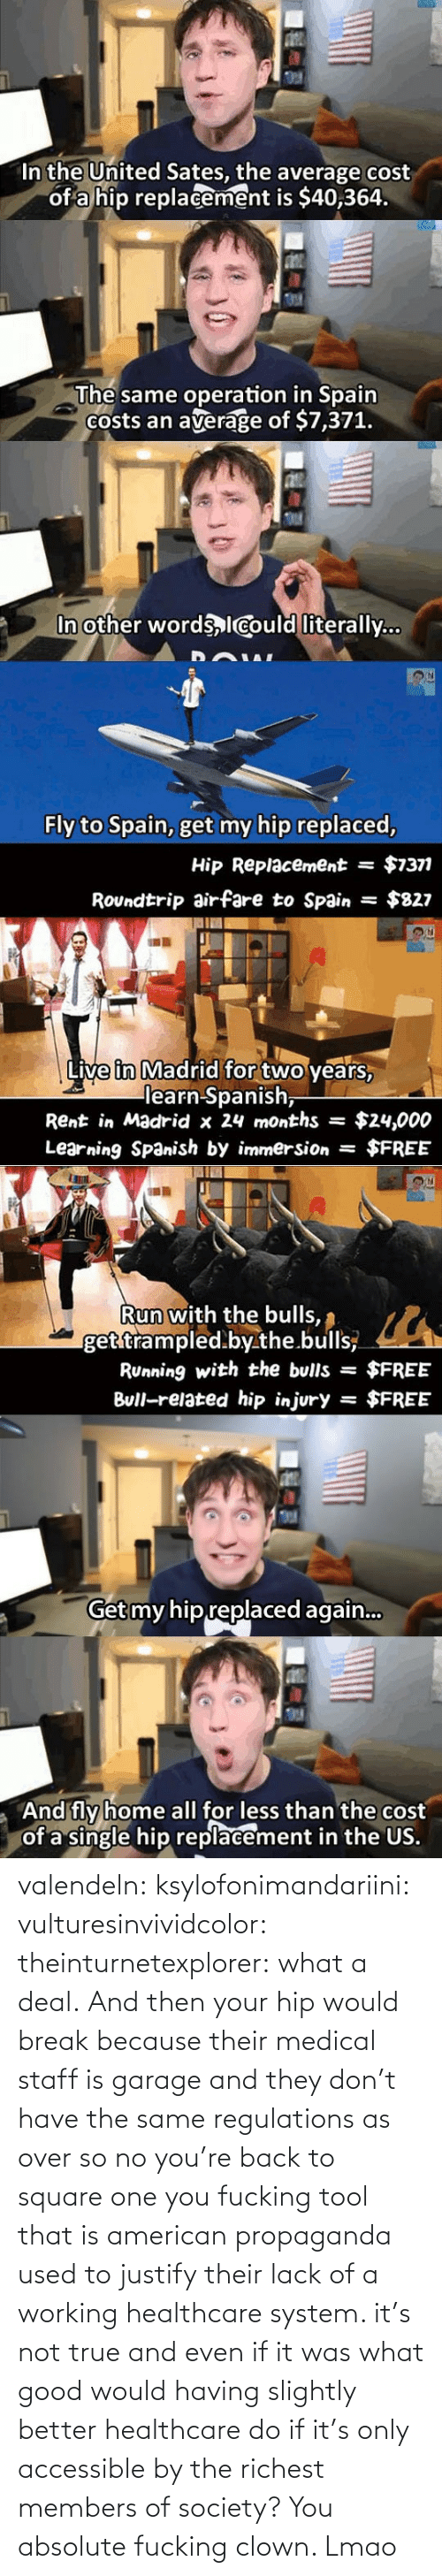 Lmao, True, and Tumblr: valendeln:  ksylofonimandariini:  vulturesinvividcolor:   theinturnetexplorer:  what a deal.   And then your hip would break because their medical staff is garage and they don't have the same regulations as over so no you're back to square one you fucking tool    that is american propaganda used to justify their lack of a working healthcare system. it's not true and even if it was what good would having slightly better healthcare do if it's only accessible by the richest members of society?      You absolute fucking clown. Lmao